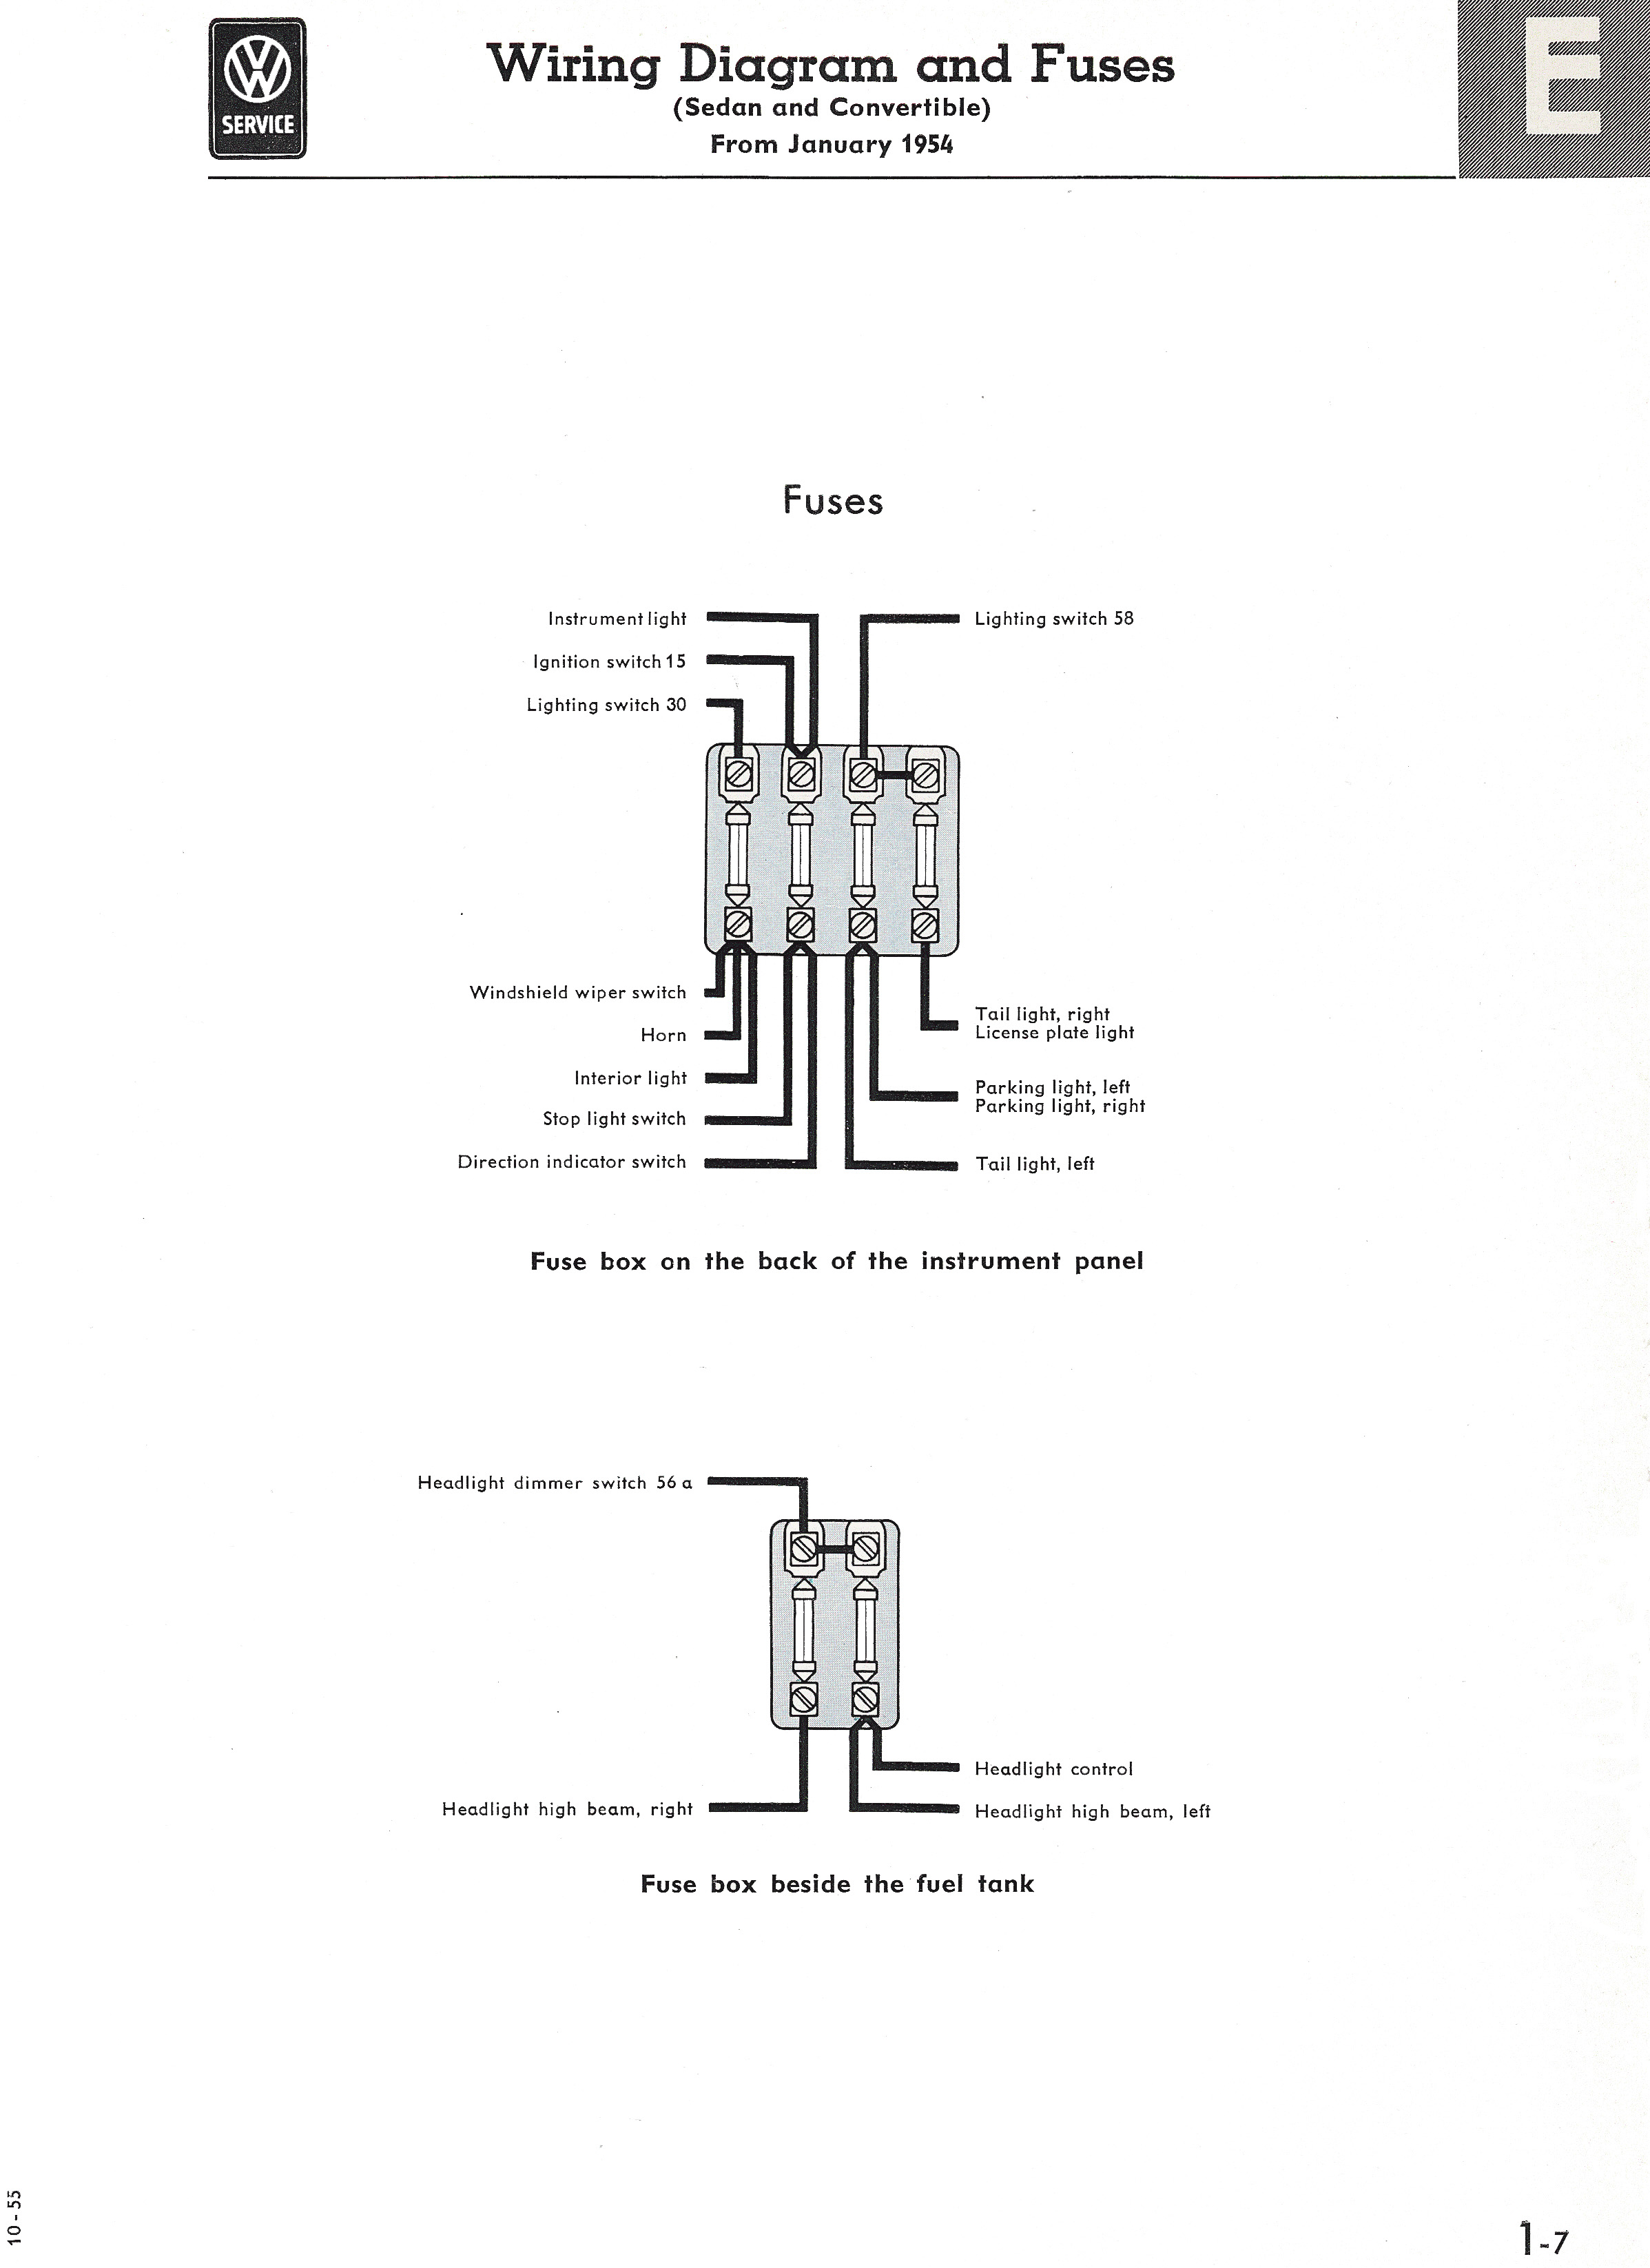 Type 1 Wiring Diagrams Fuse Box Labels